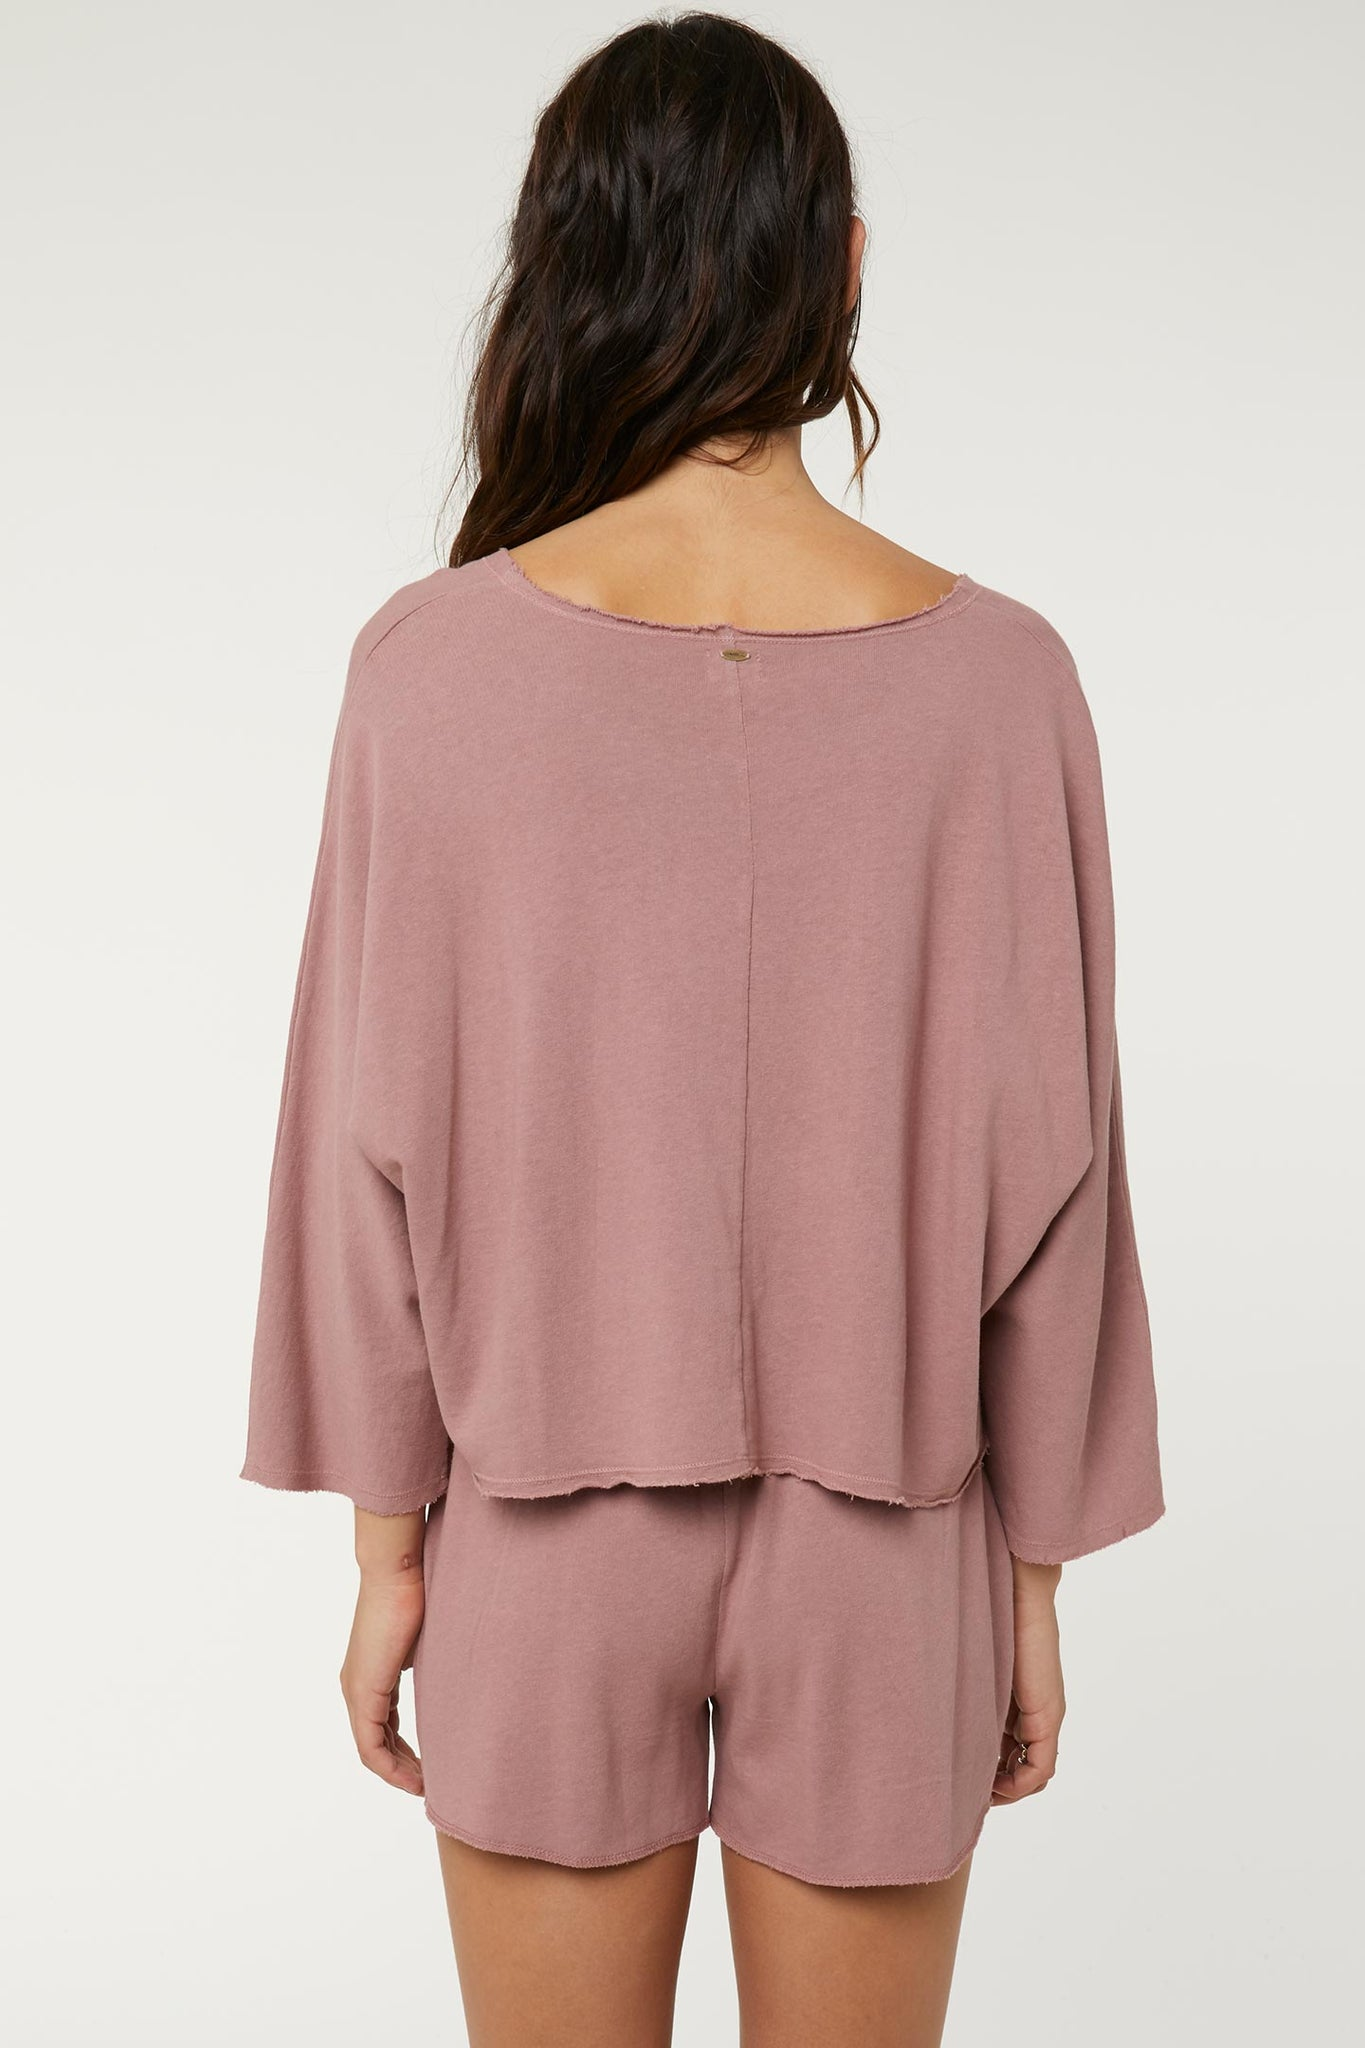 Madeleine Top - Dusty Mauve | O'Neill